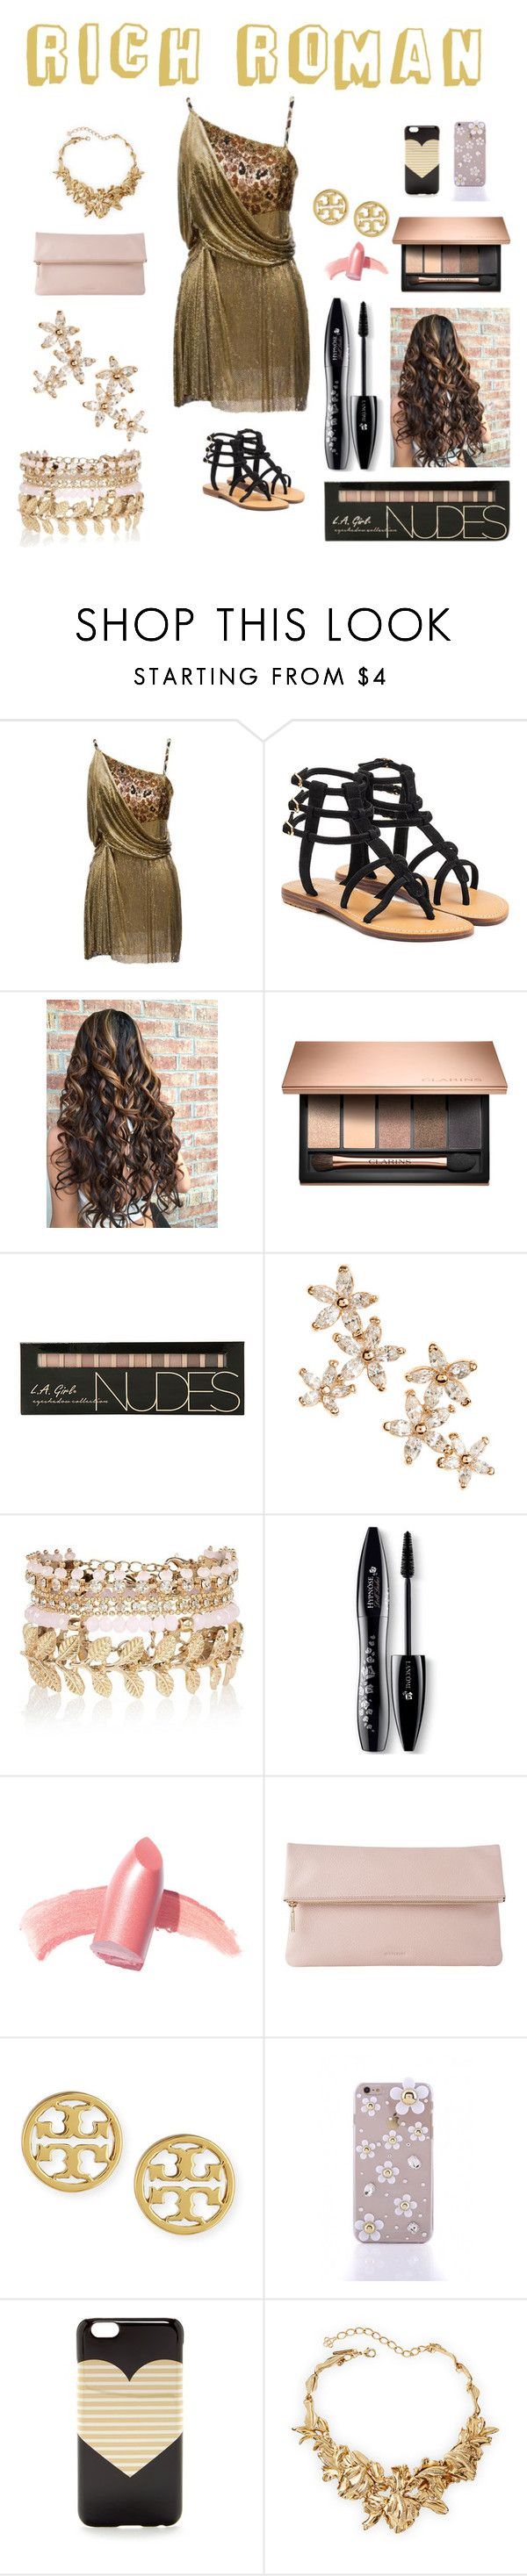 """Rich Roman"" by grumpy-cat-lover ❤ liked on Polyvore featuring Versace, Mystique, Bonheur, River Island, Lancôme, Elizabeth Arden, Whistles, Tory Burch, J.Crew and Oscar de la Renta"